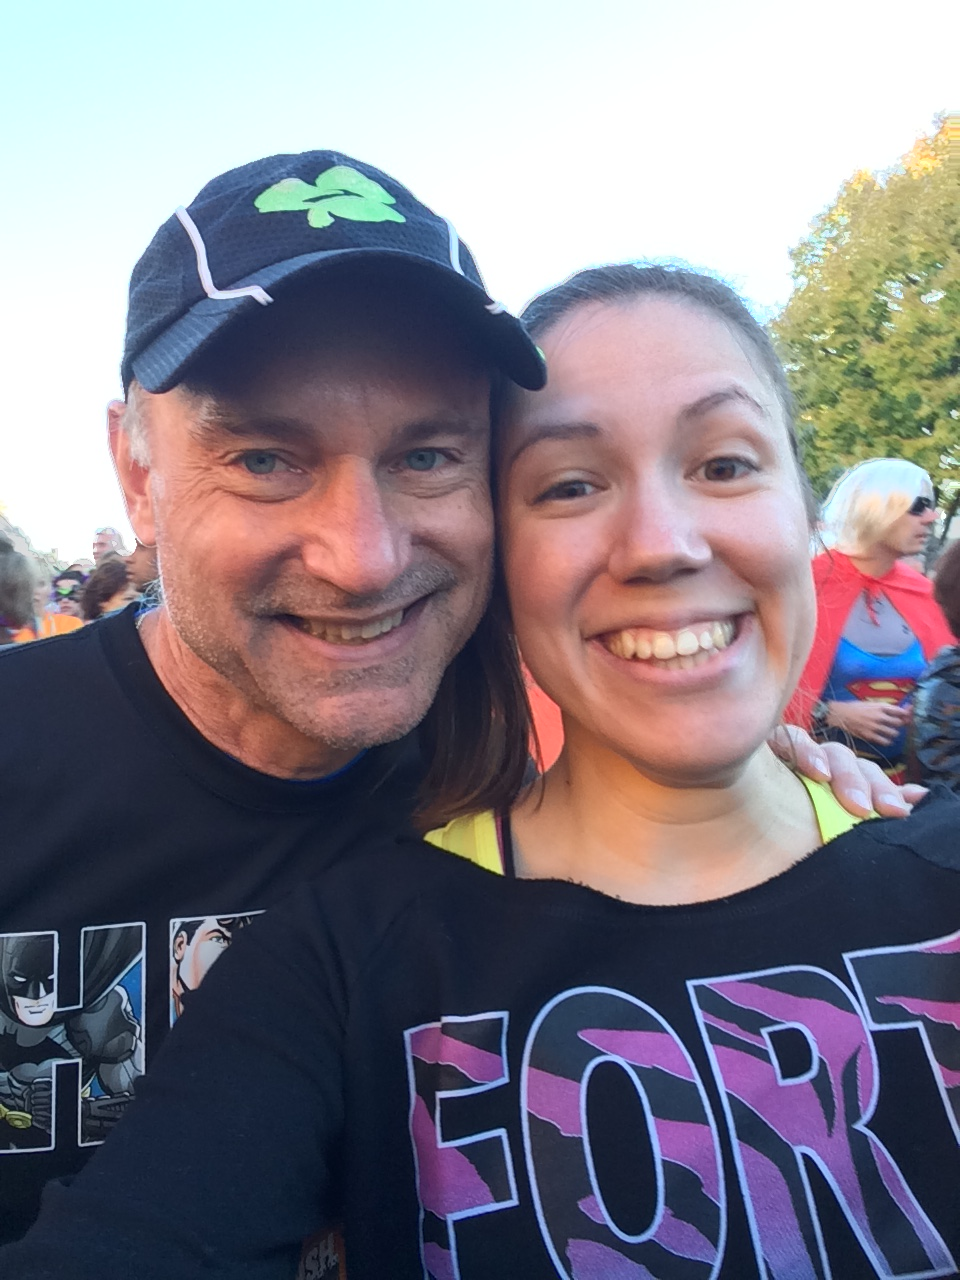 Starting line selfie with Dad!